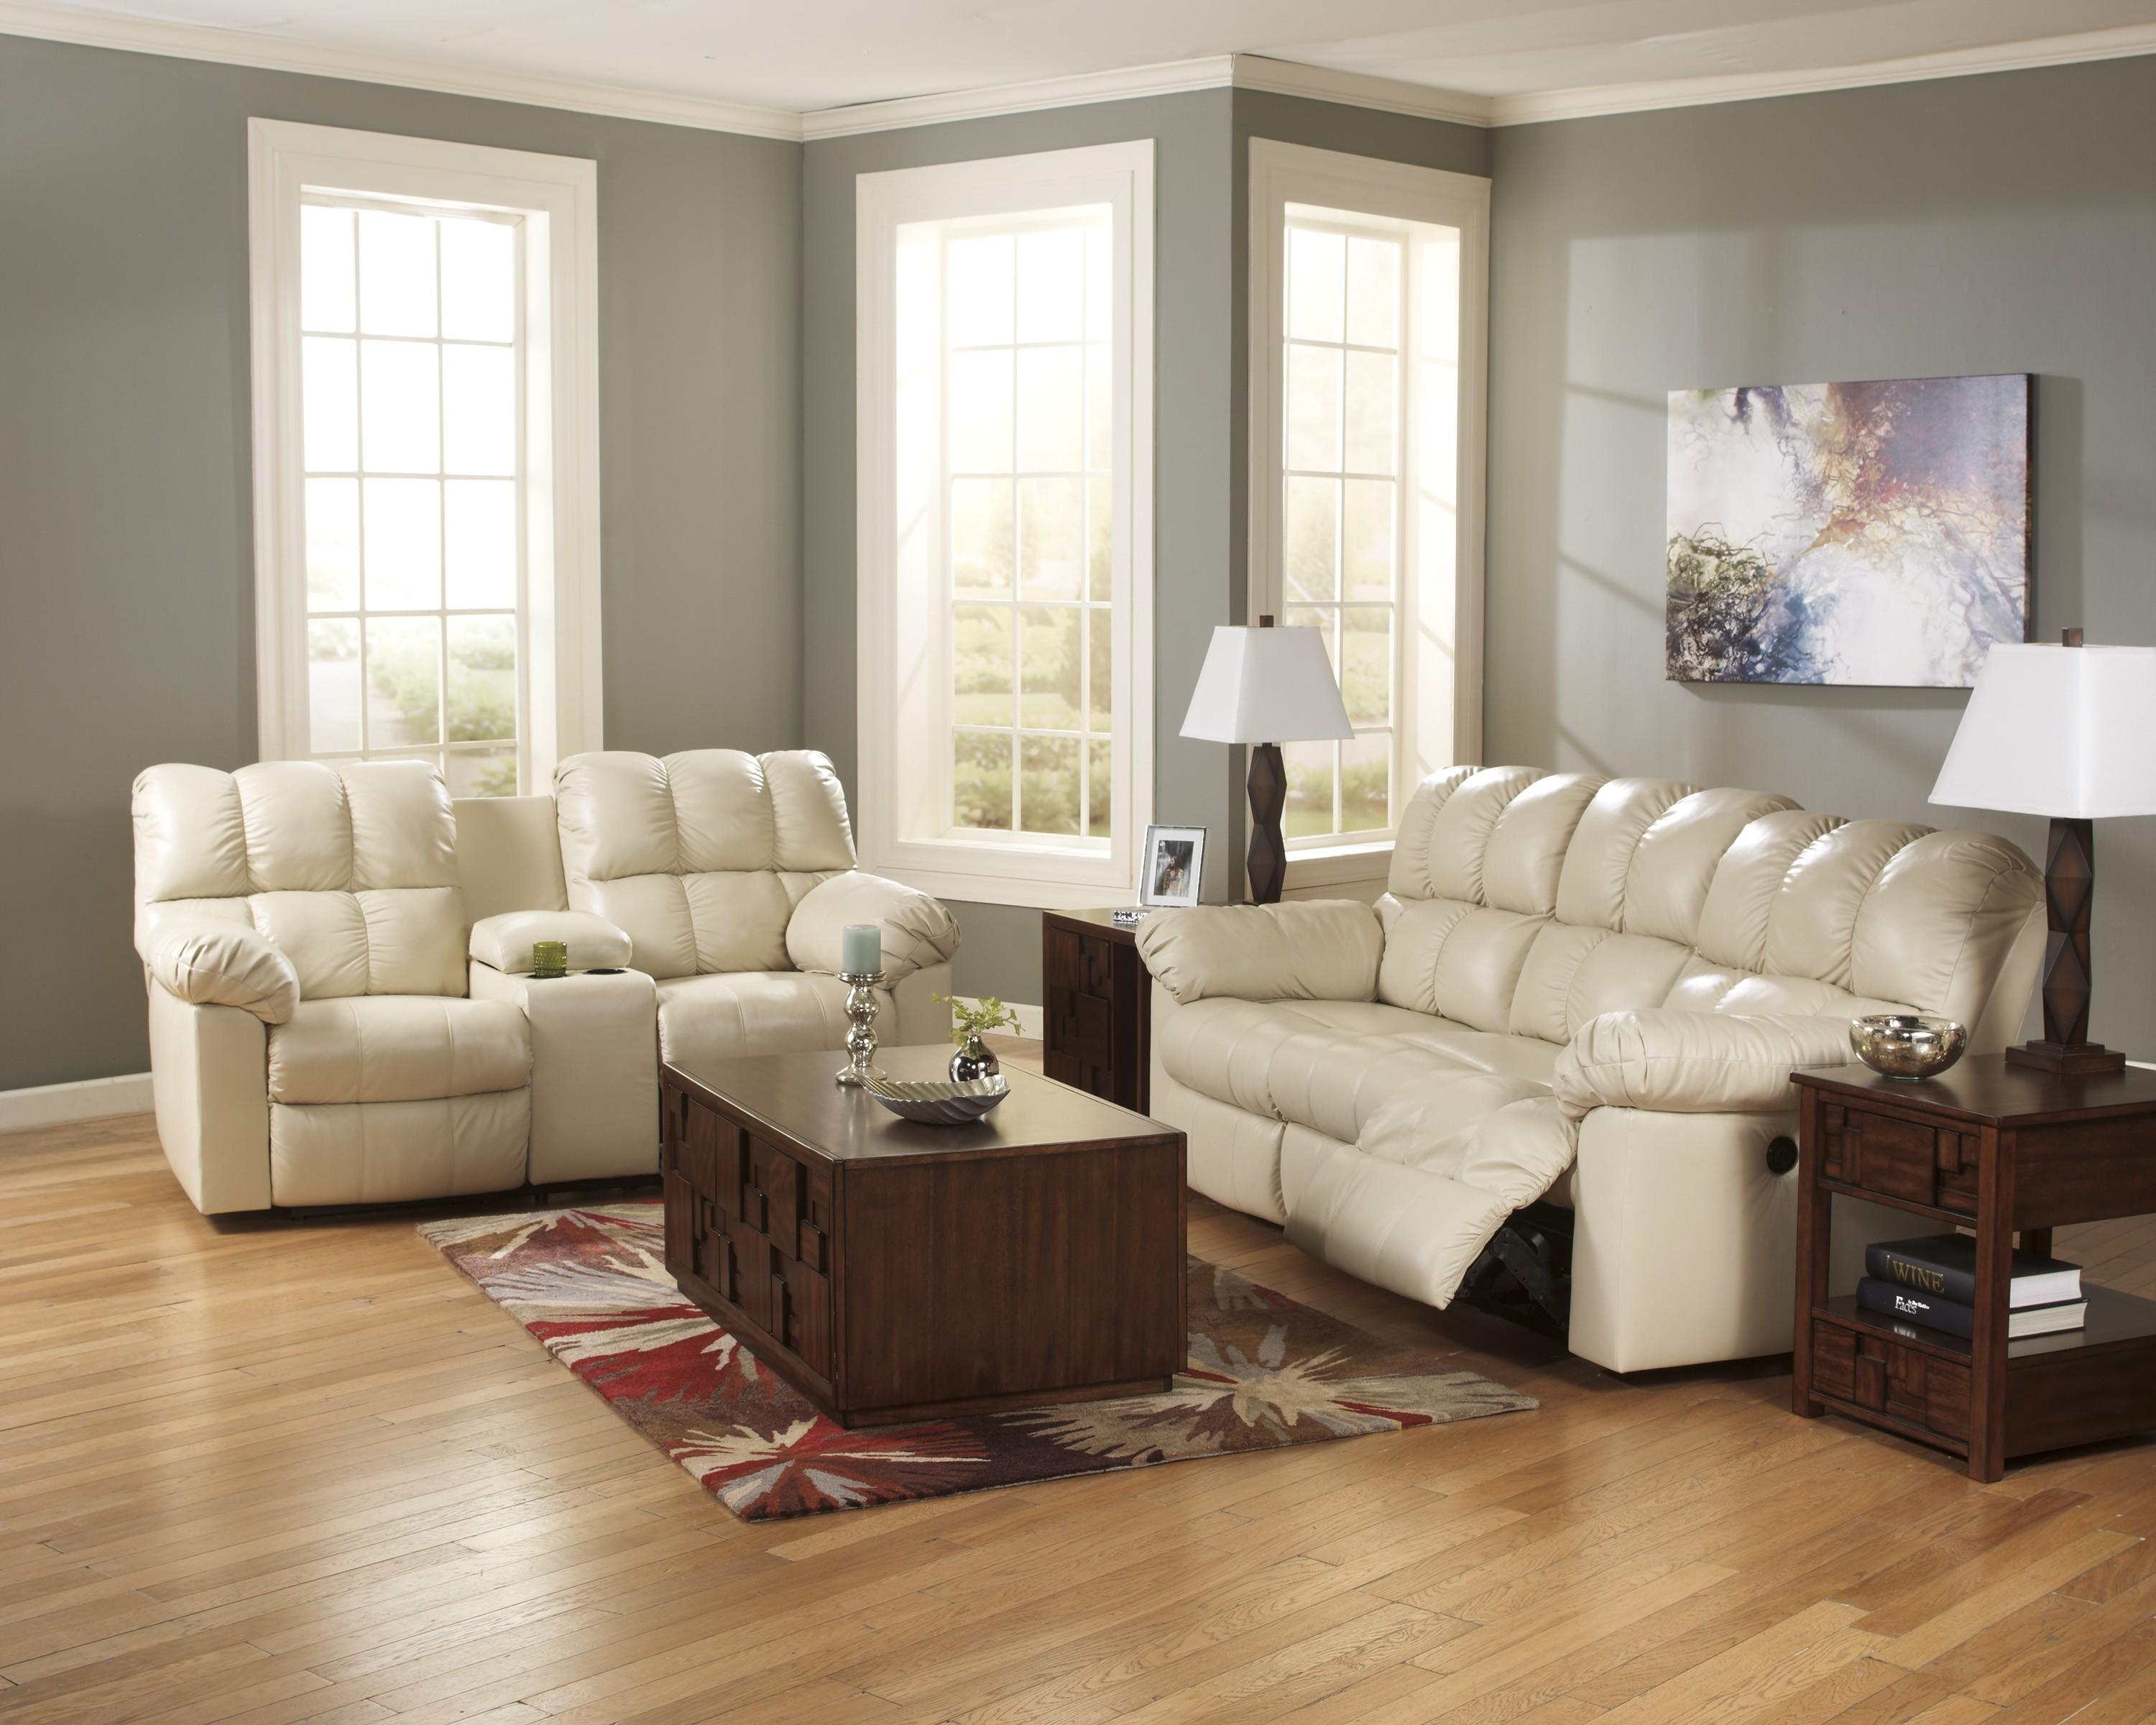 16 Cream Colored Leather Sofa | Auto-Auctions for Cream Colored Sofas